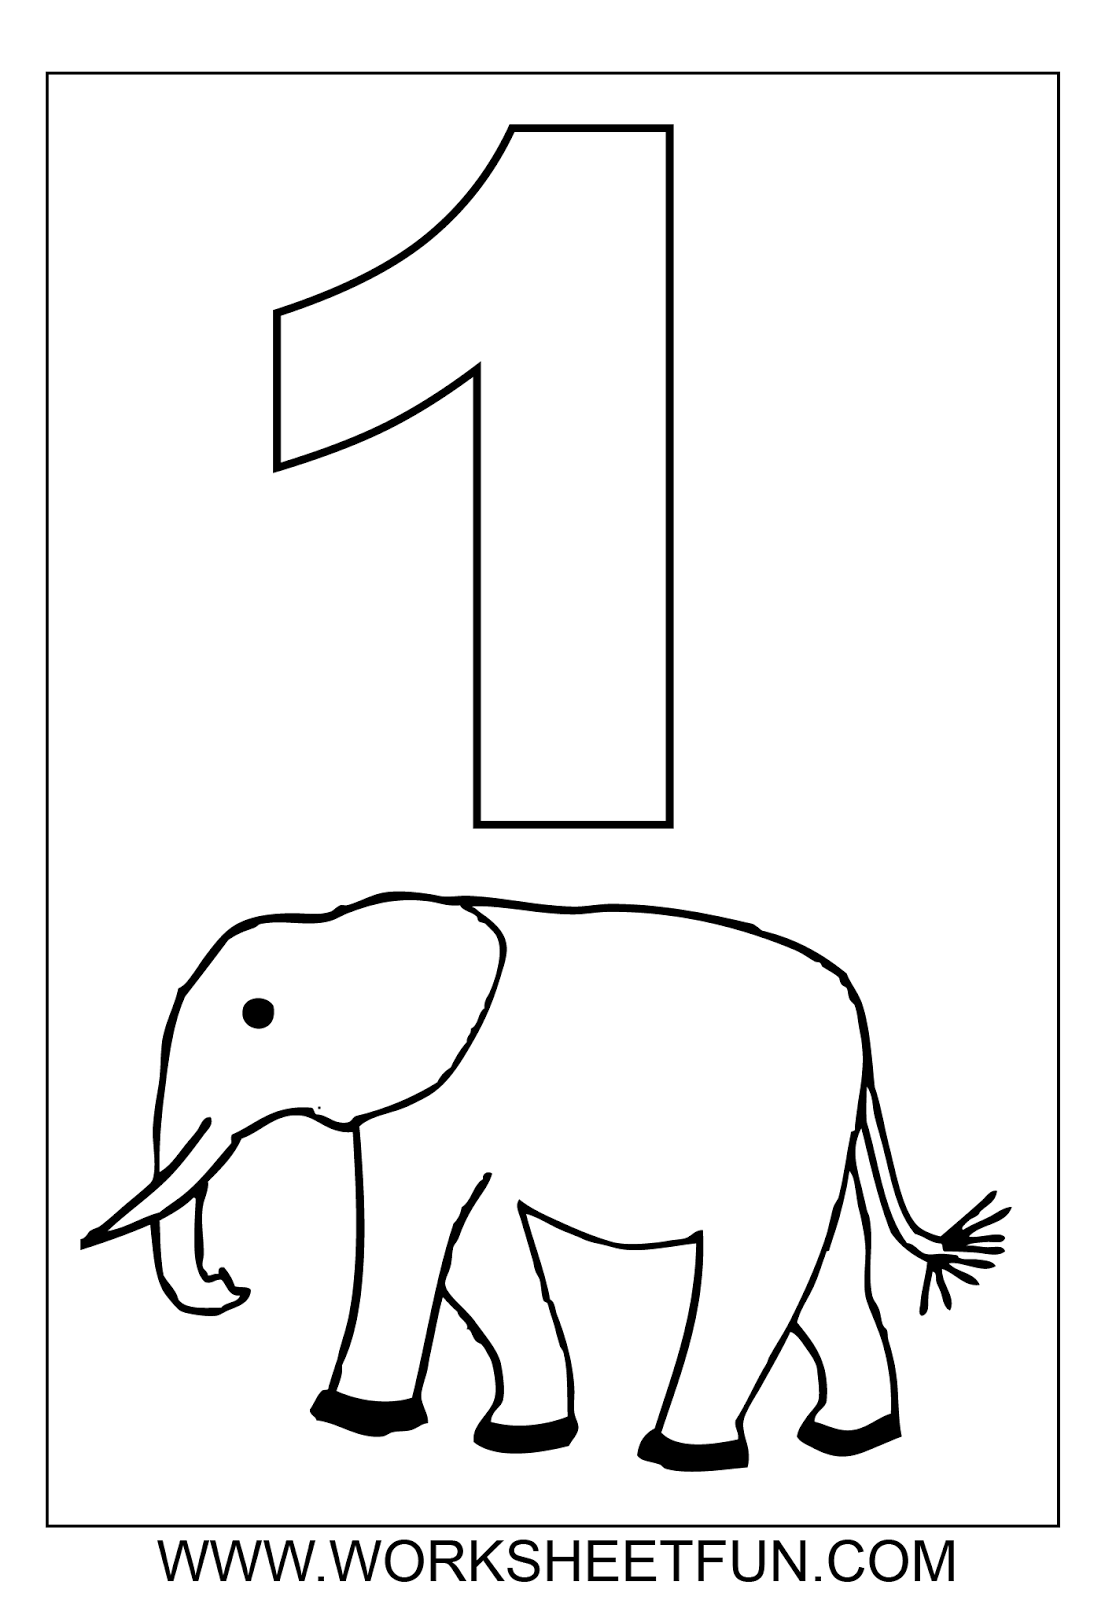 Free Coloring Pages Count By Number Coloring Pages